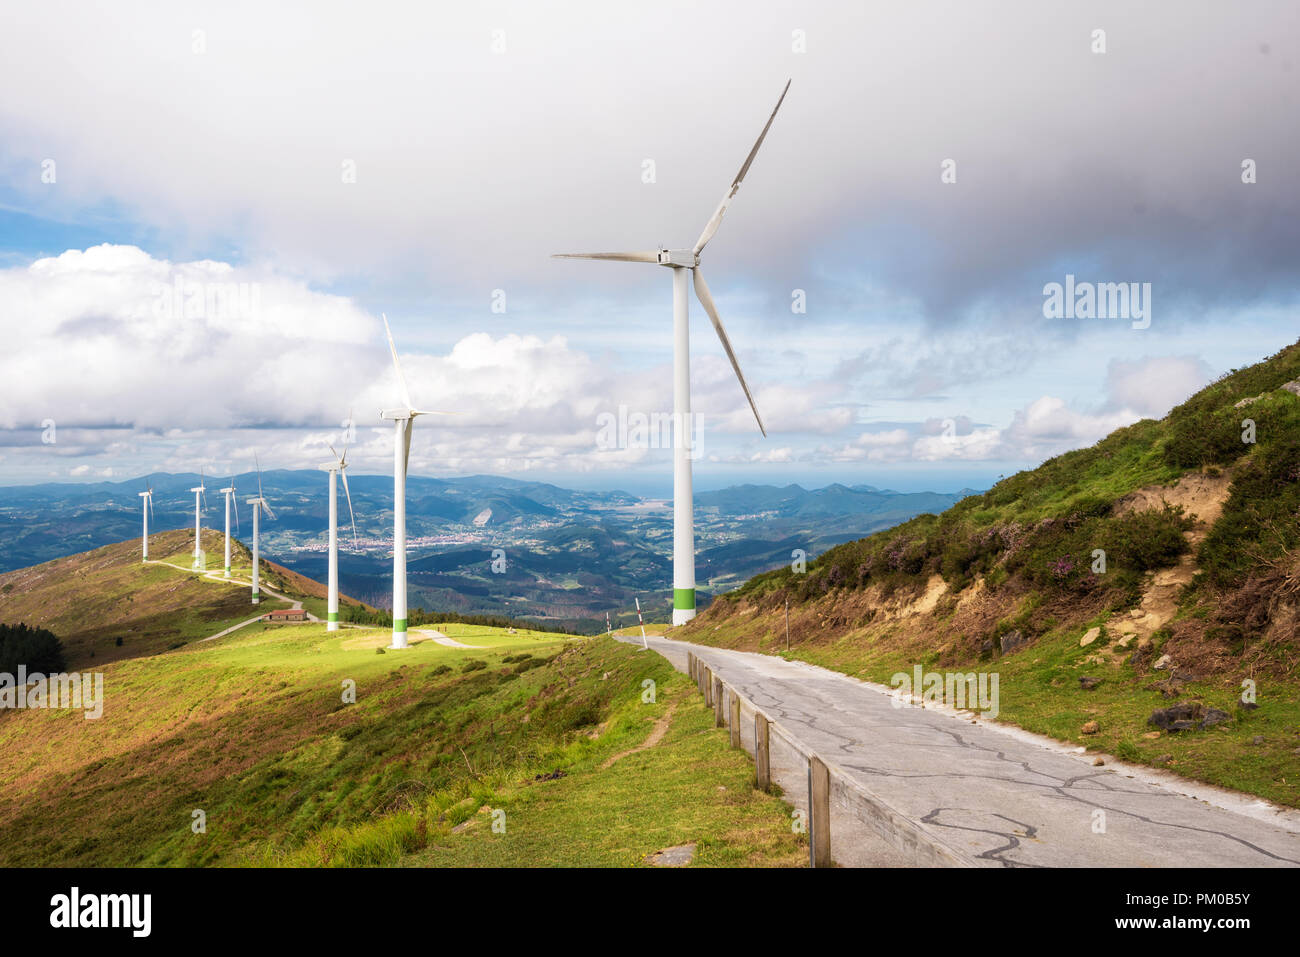 Renewable energy. Wind turbines, eolic park in scenic landscape of basque country, Spain. - Stock Image